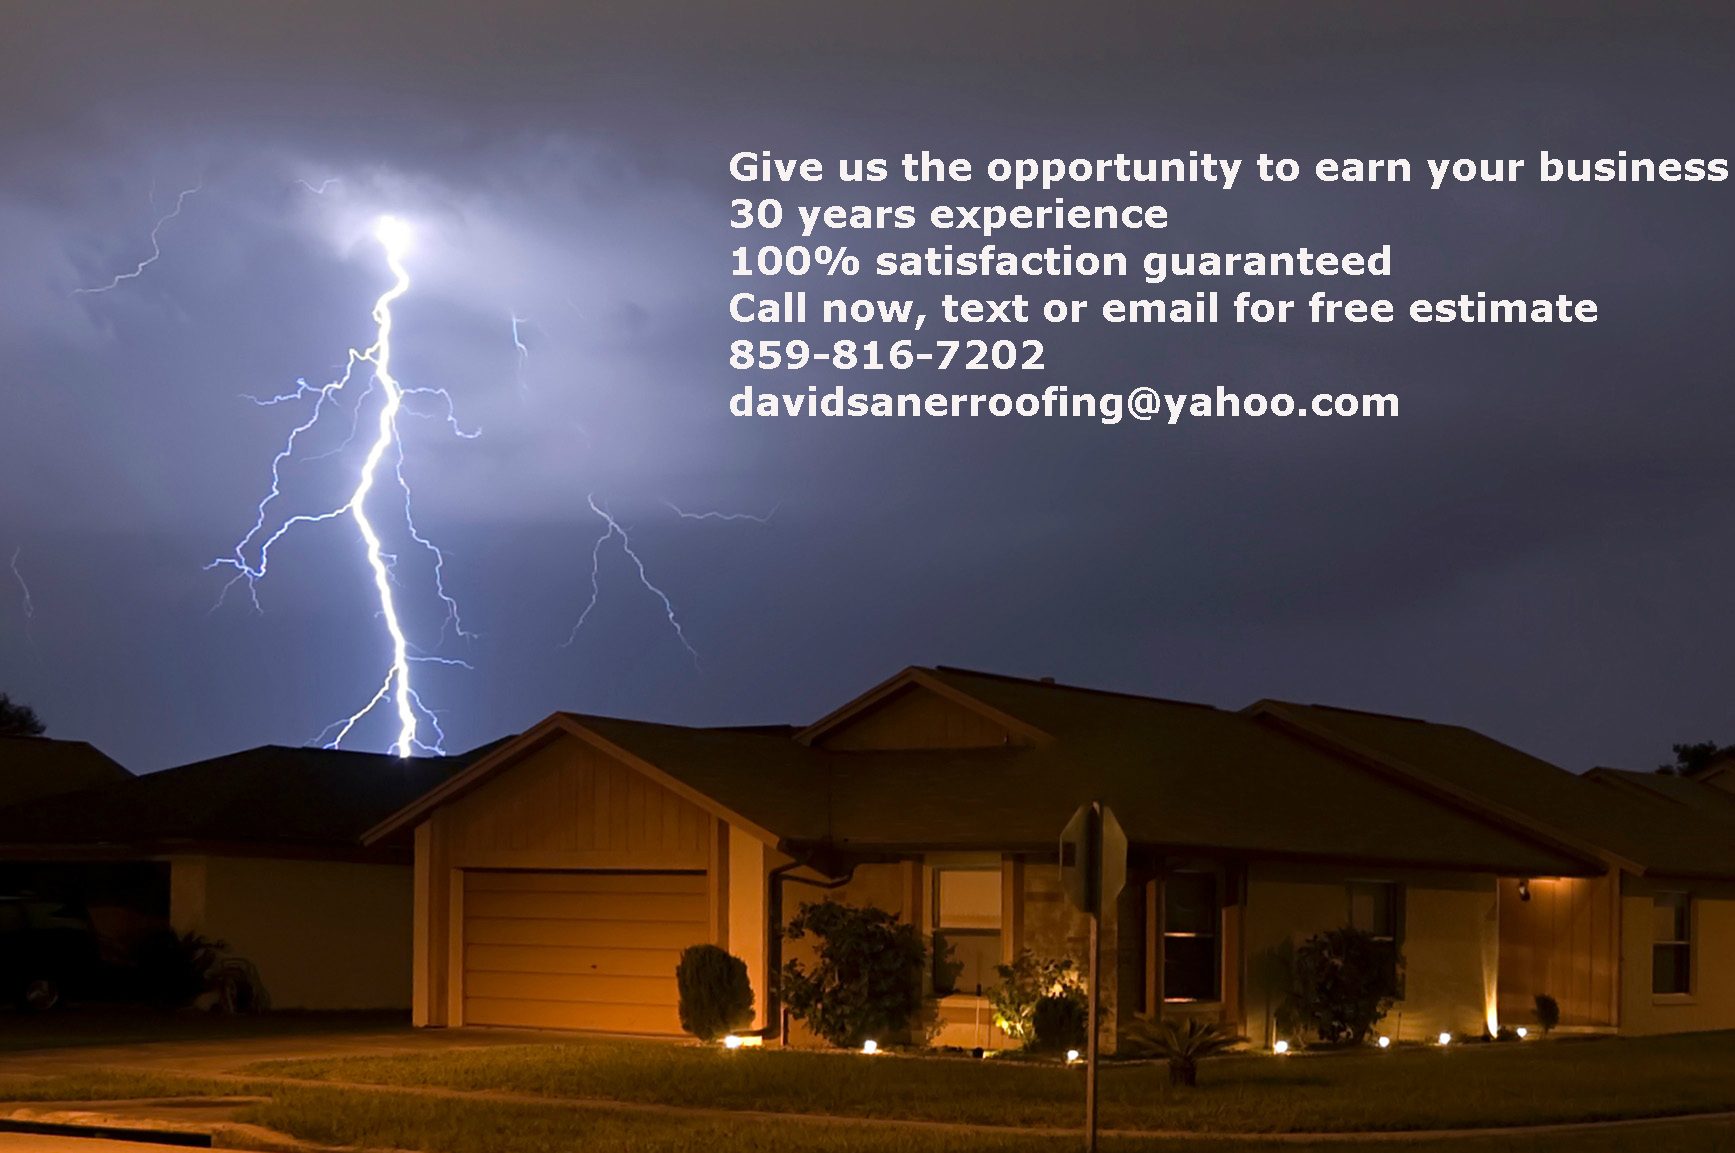 Roofing Contractors in Florence, KY with 30 years of experience.